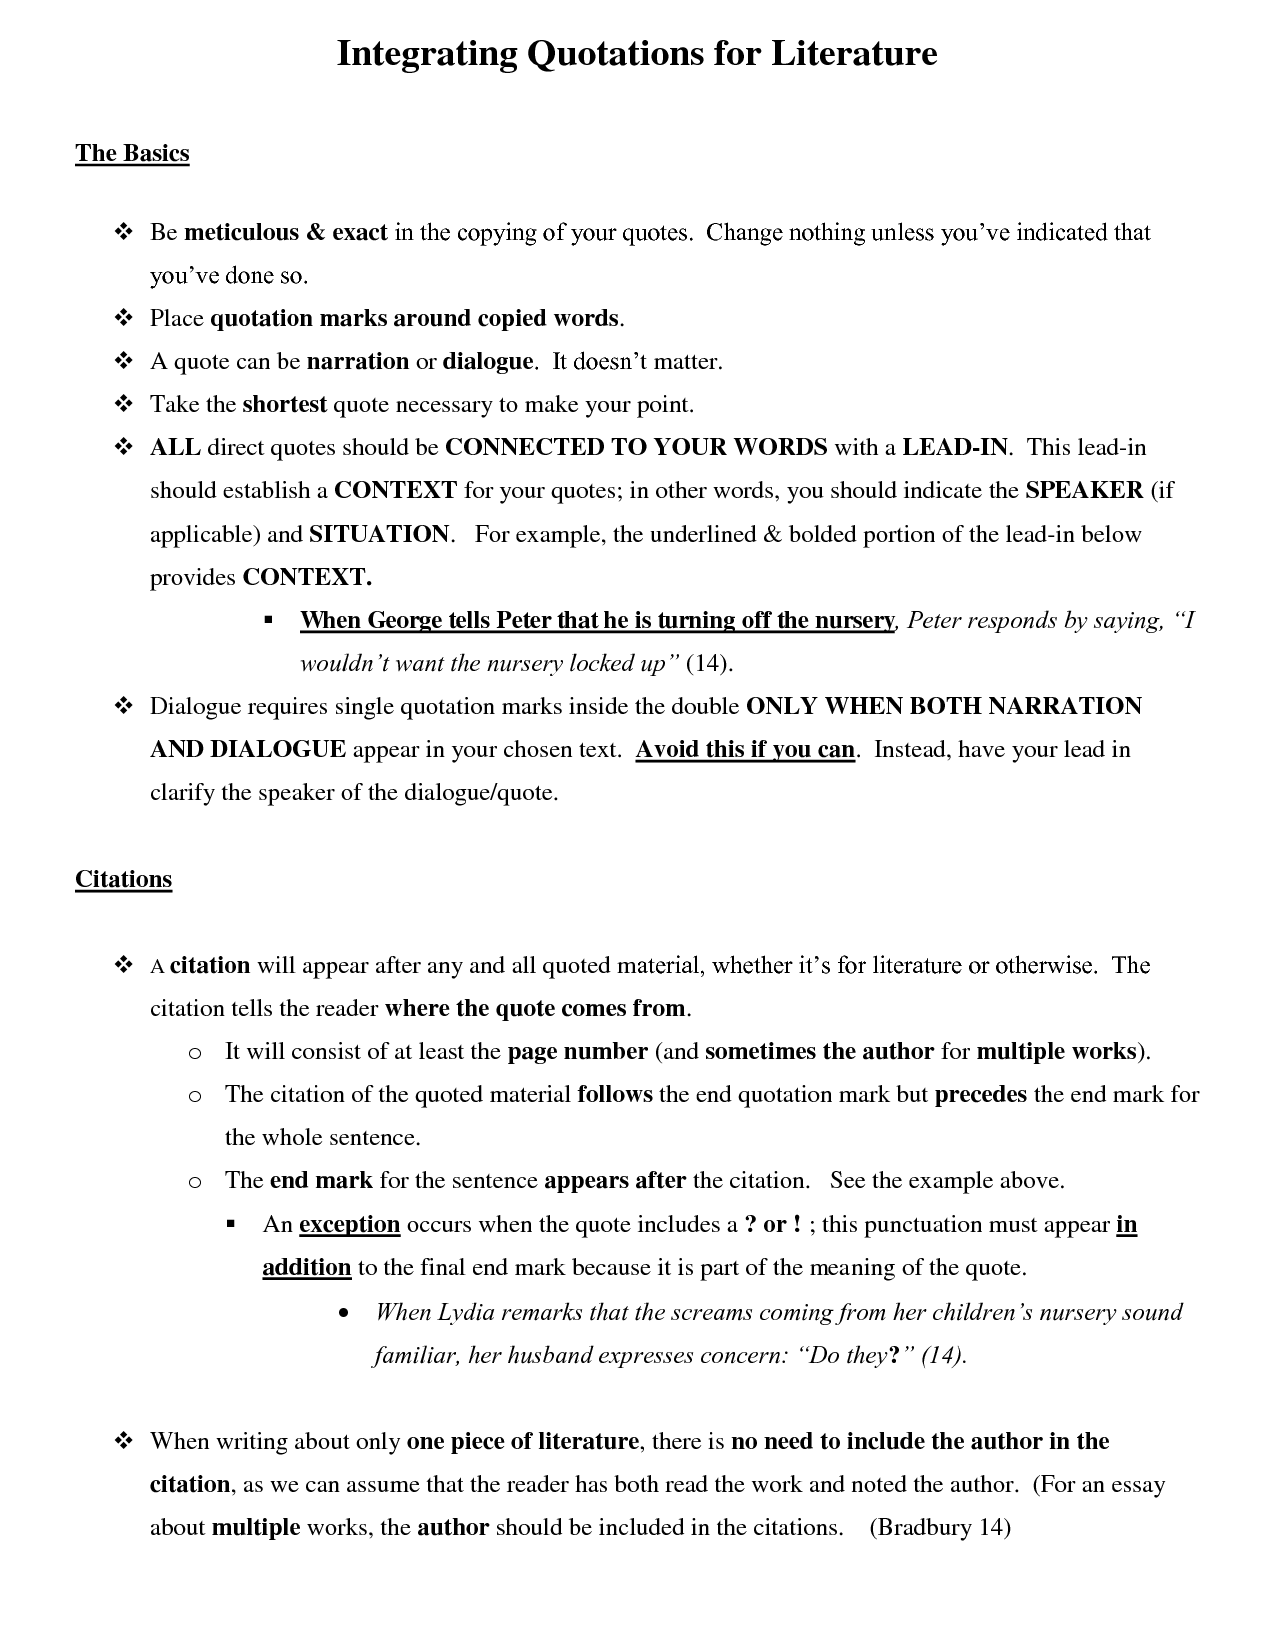 how to use - in essays